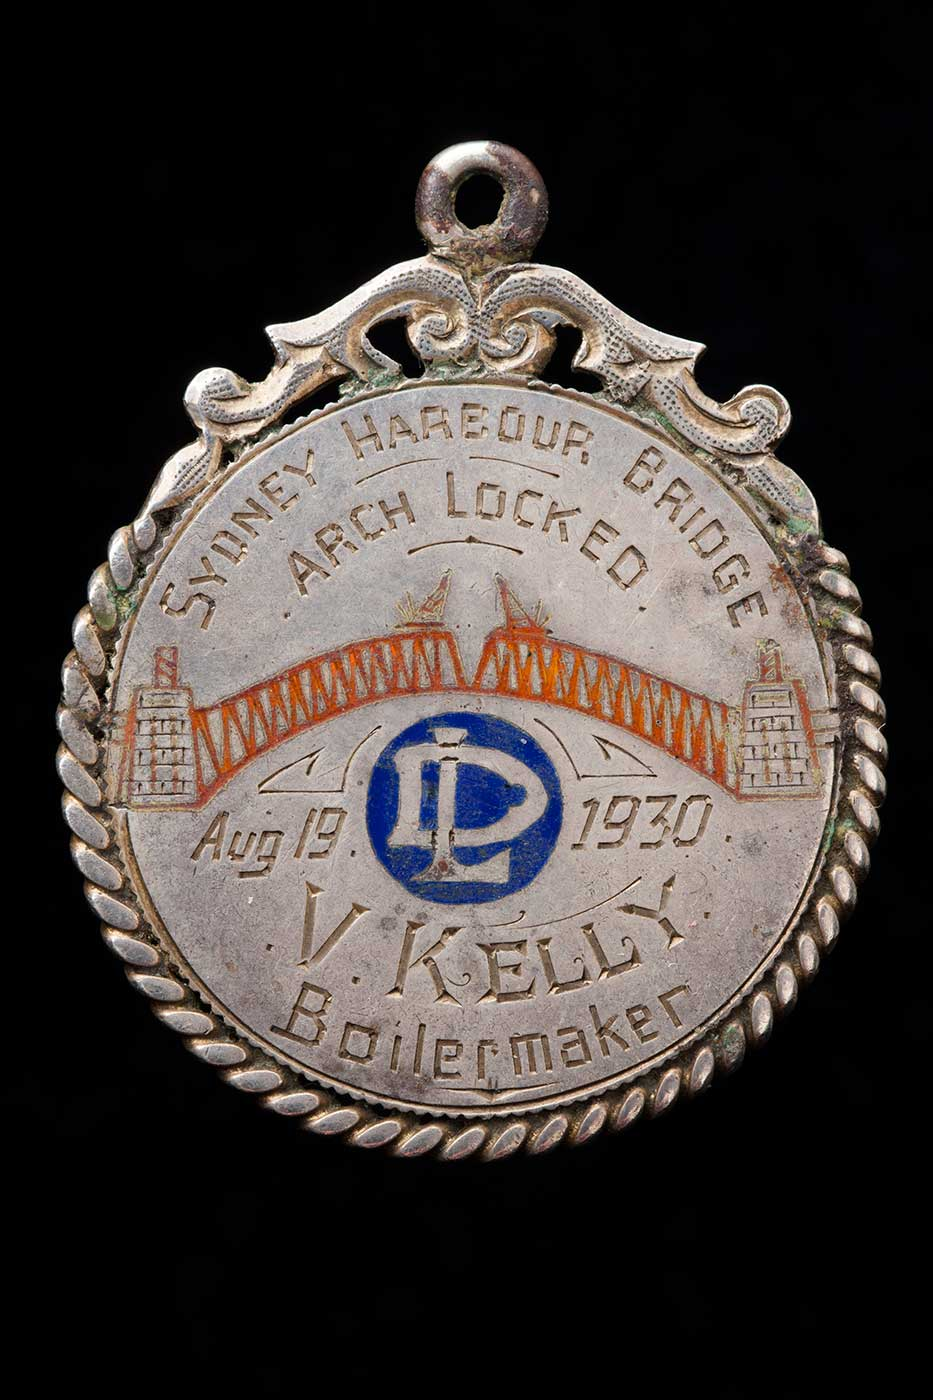 Circular medal awarded to V Kelly inscribed 'Sydney Harbour Bridge, arch locked, Aug 19, 1930.' - click to view larger image